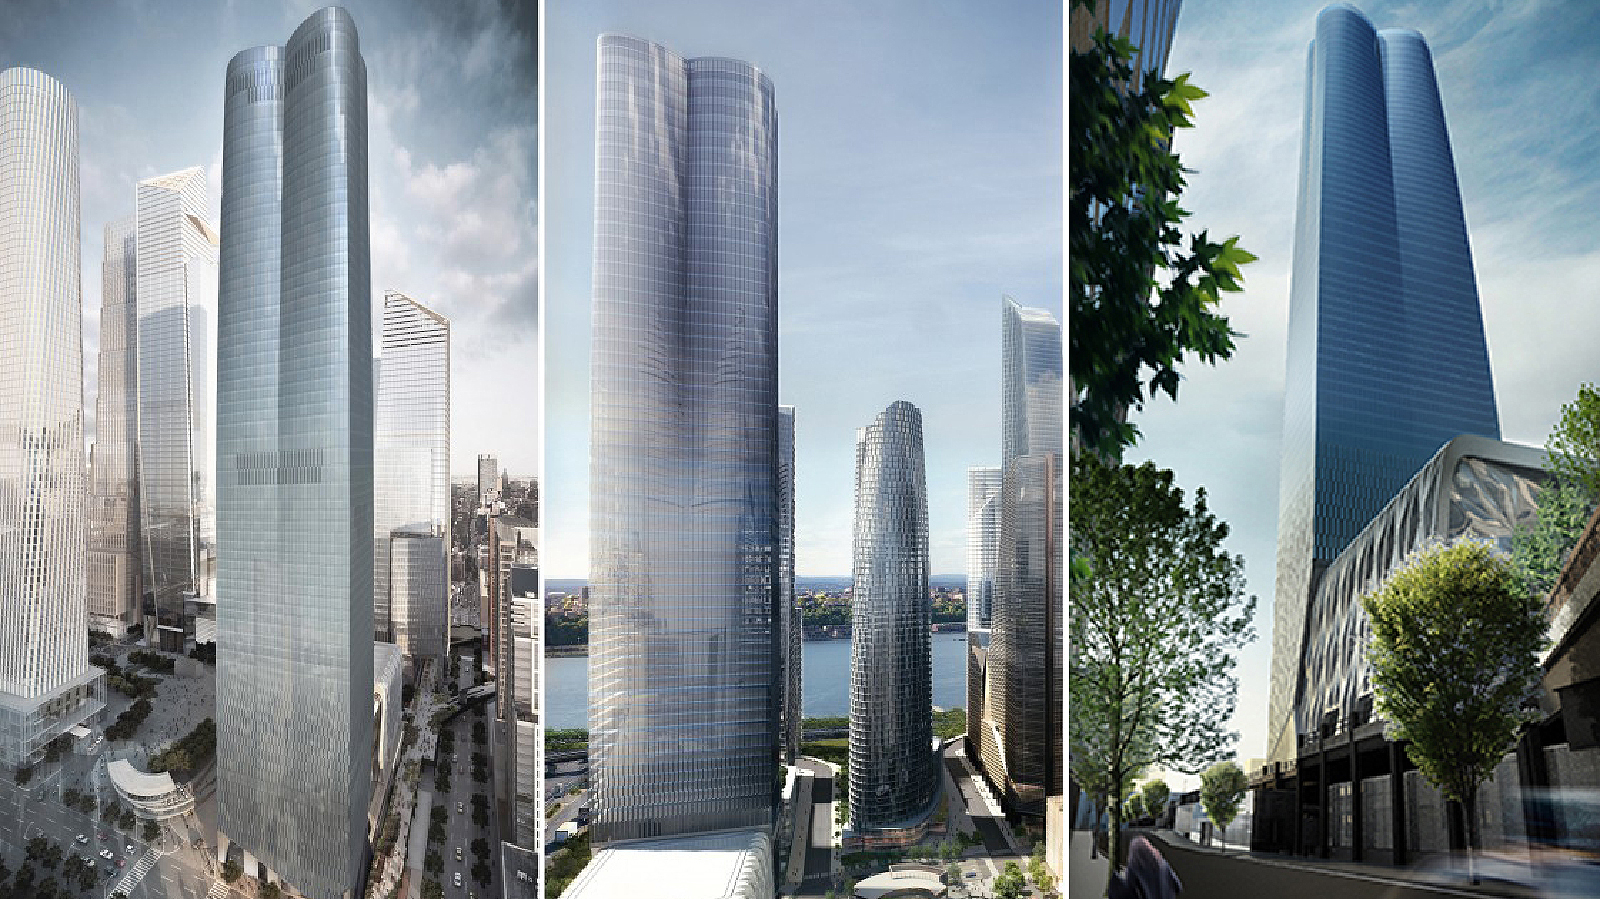 Fifteen Hudson Yards, 15 Hudson Yards